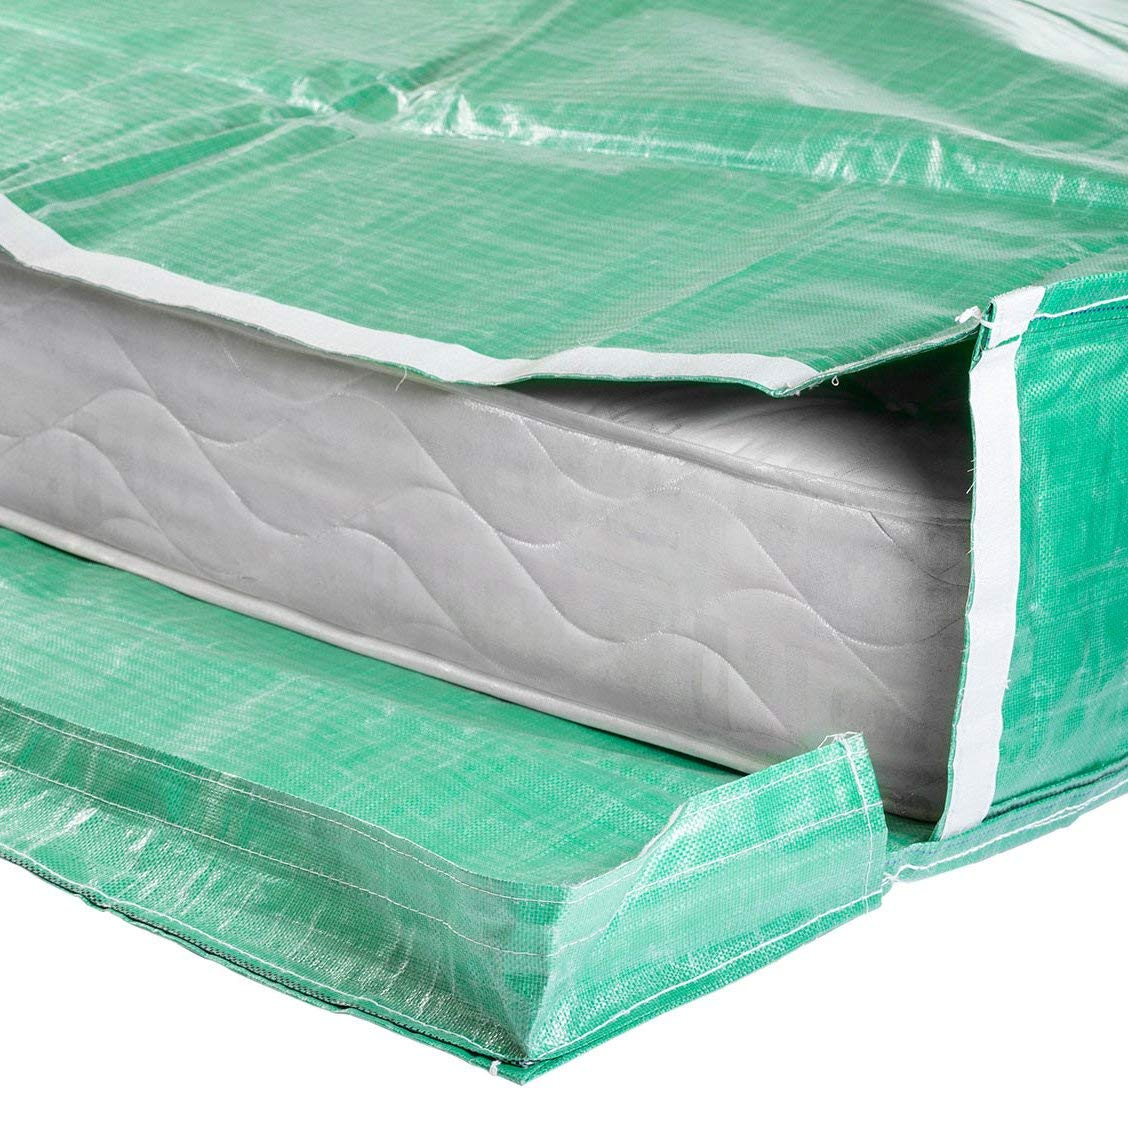 Protective Mattress Bags with Handles - Moving and Storage - Reusable (Double)